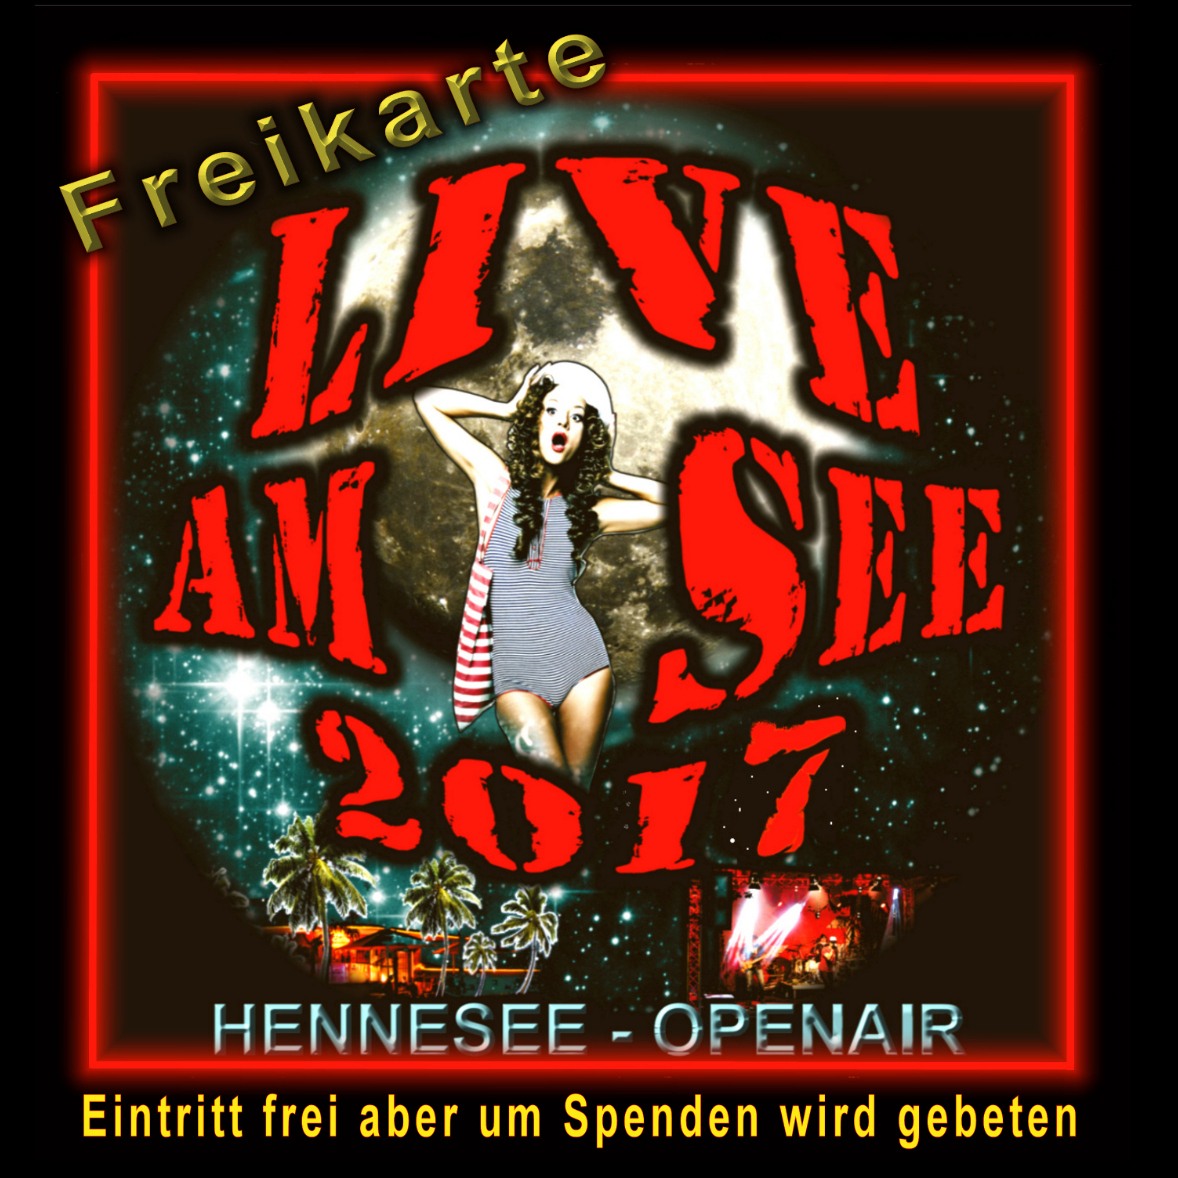 LIVE AM SEE bei Facebook